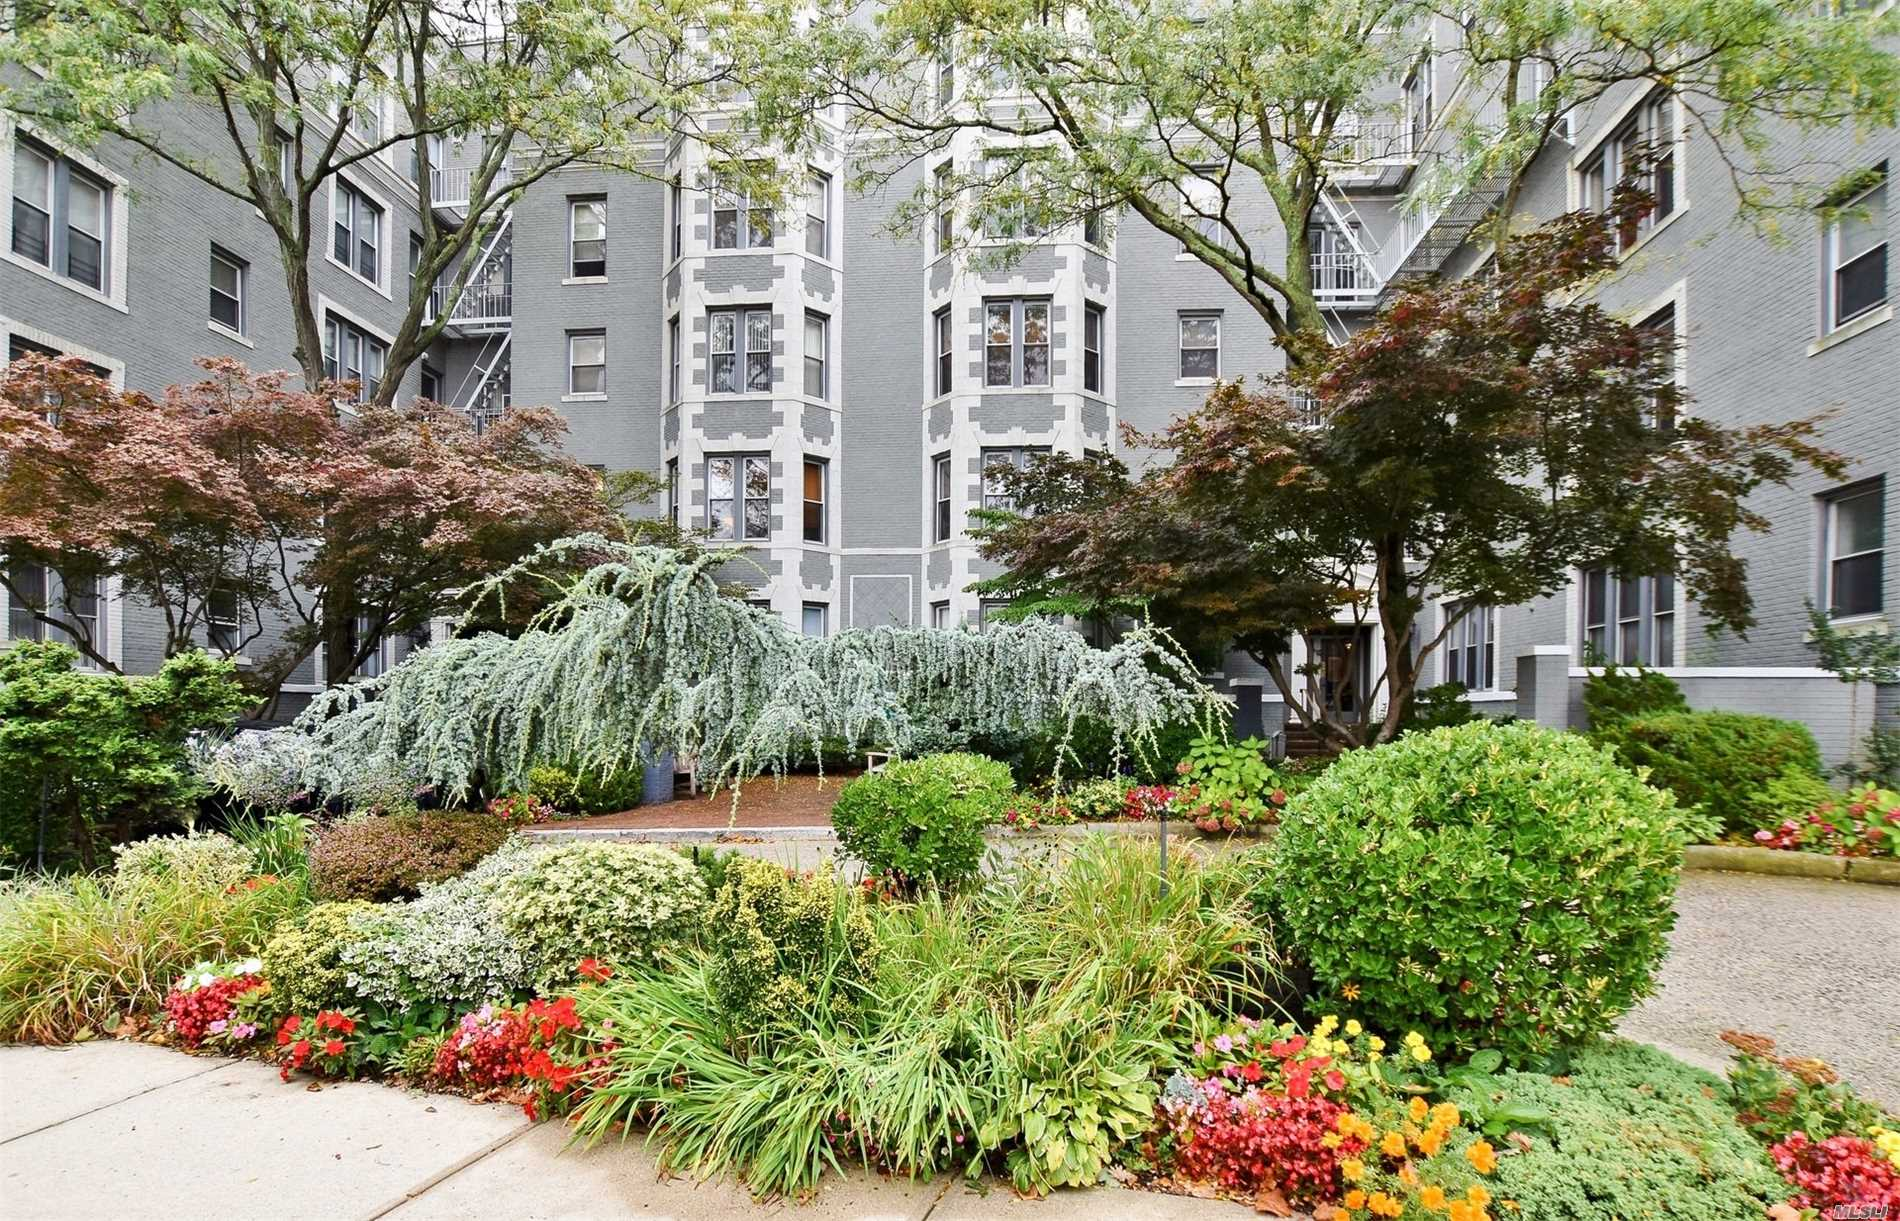 Prestigious And Beautifully Maintained, One Of A Kind 1920'S Grey Building, Seven Minute Walk To The Lirr. Features Landscaped Gardens, Recently Renovated Hallways, Laundry Room On Premises, And Access To The Backyard. Light Filled 1Br, 1Ba Approx 950 Sq Ft Unit Boasting 12 Large Windows, High Ceilings, Oak Floors, Large Closets, Cedar Closet, Cac, And Neutral Decor.